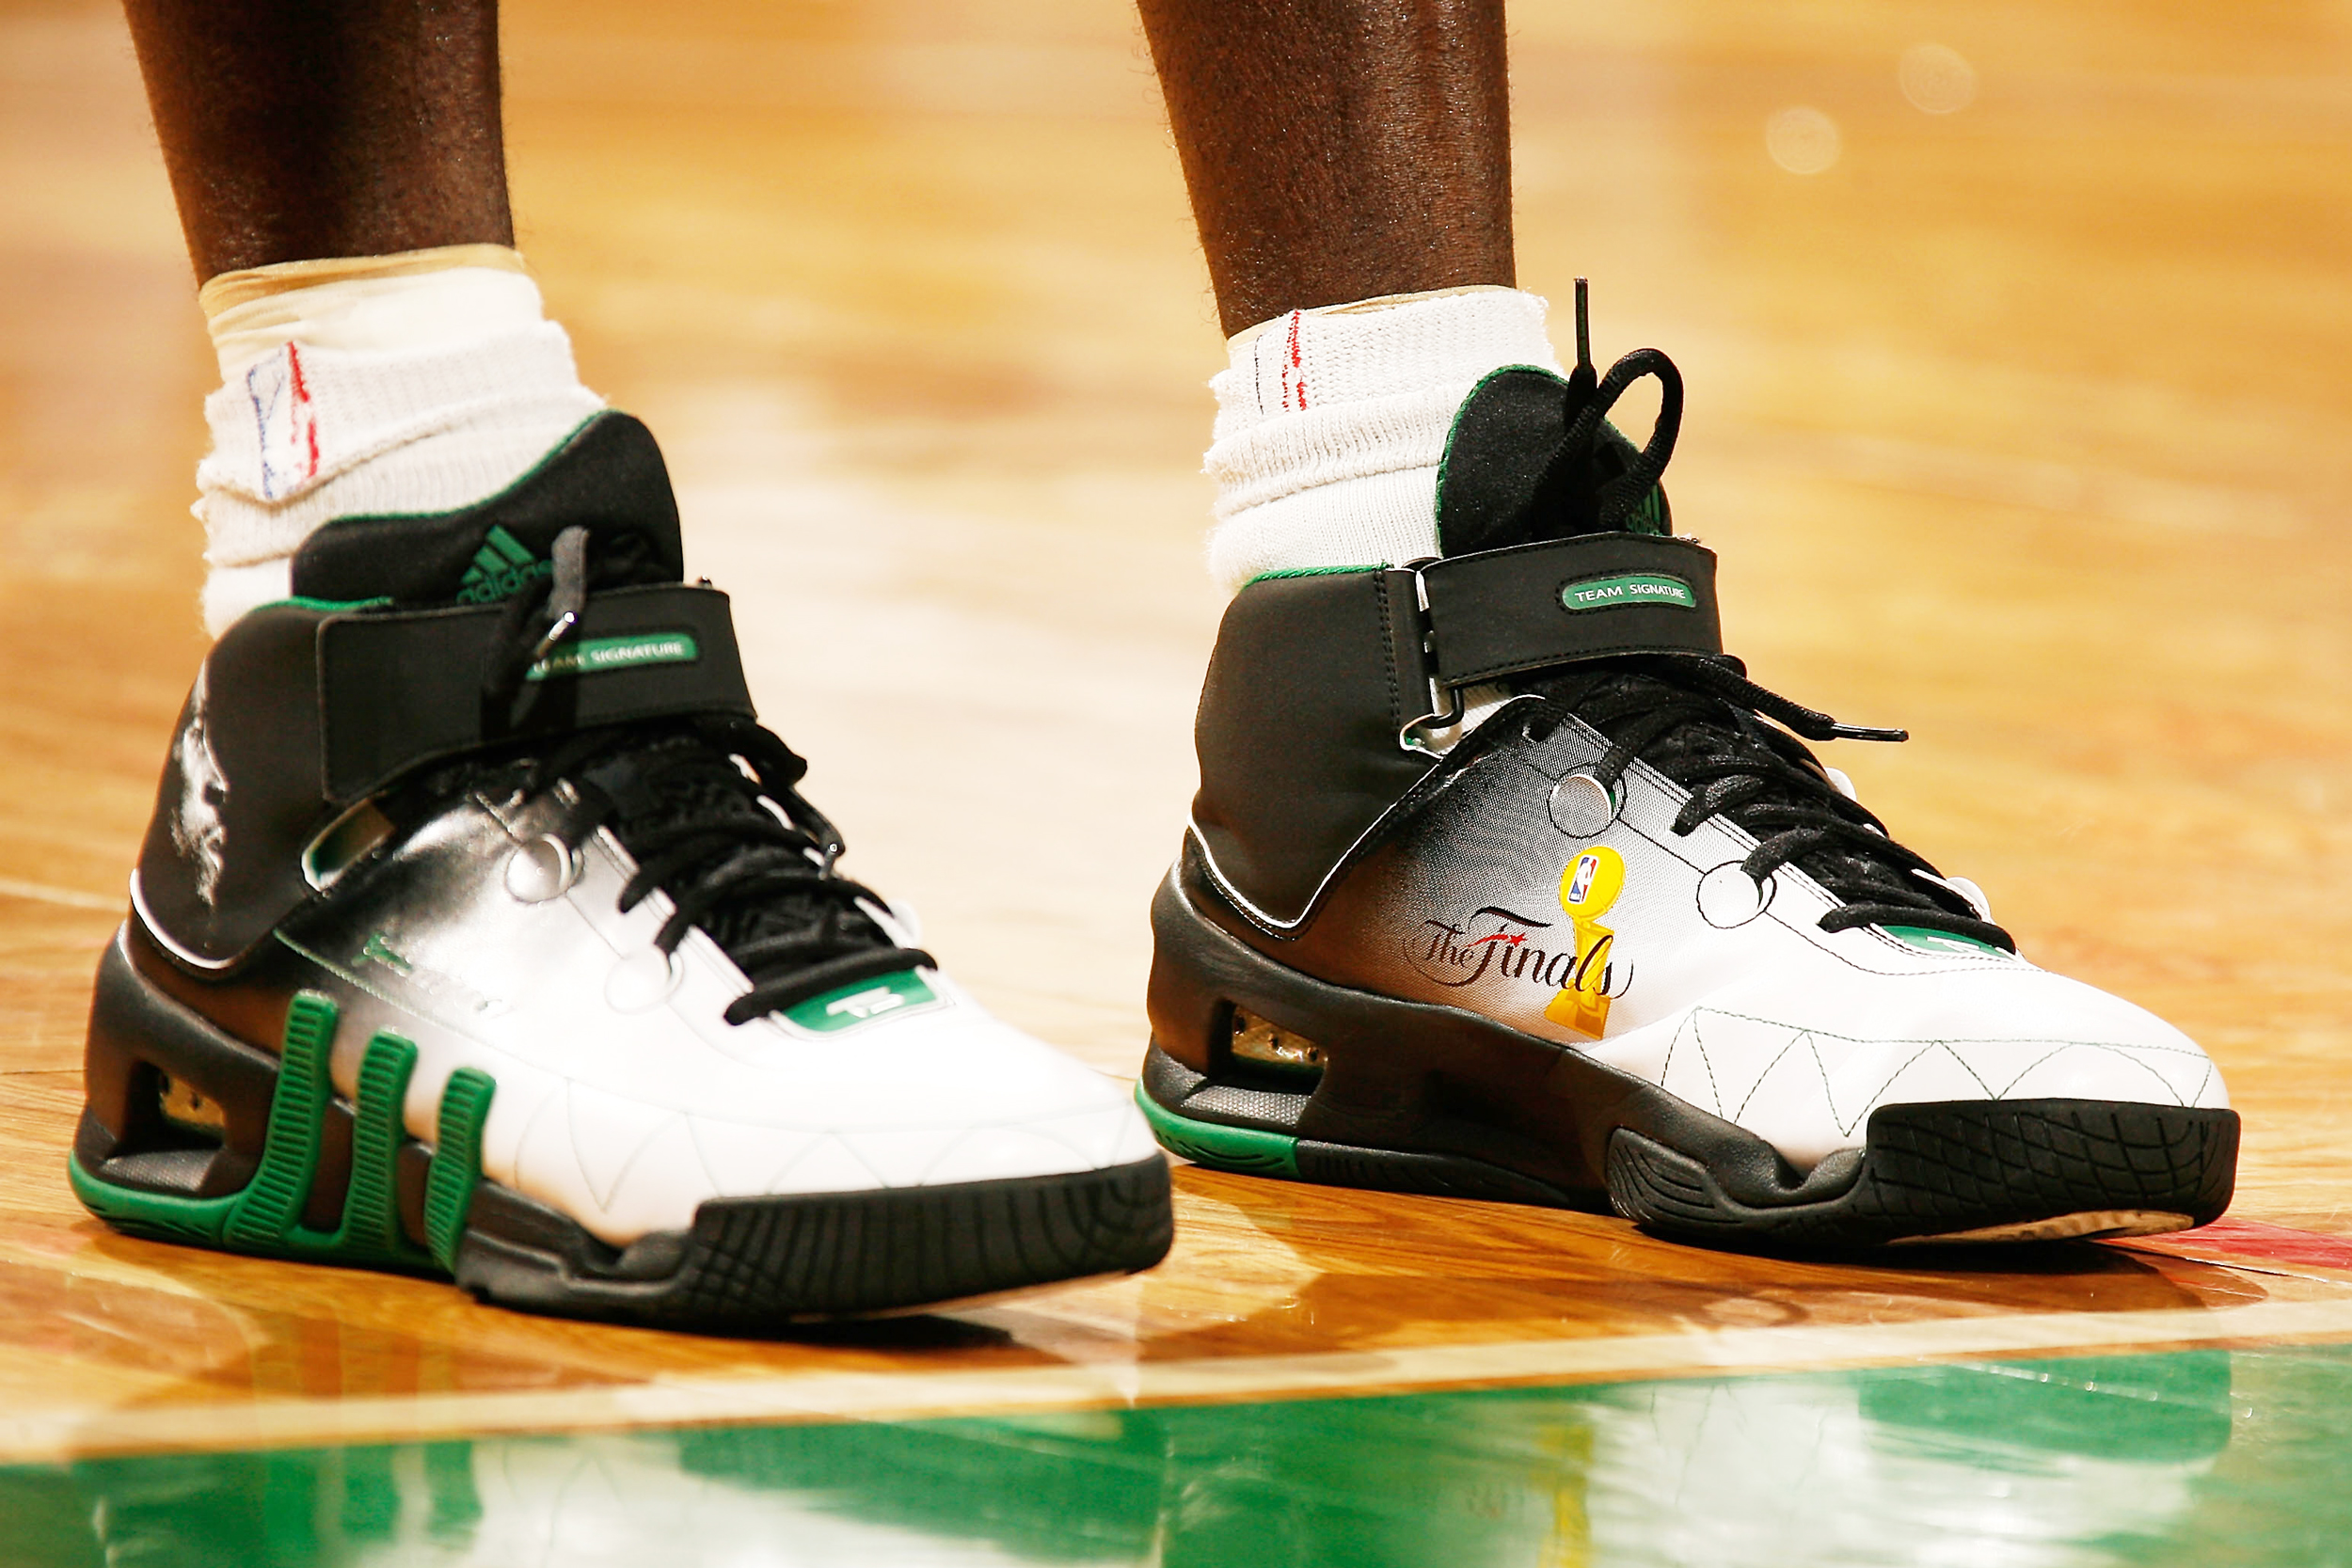 a4ca4455815e Kevin Garnett of the Boston Celtics wears a pair of unique Adidas sneakers  in honor of the 2008 NBA Finals against the Los Angeles Lakers on June 17